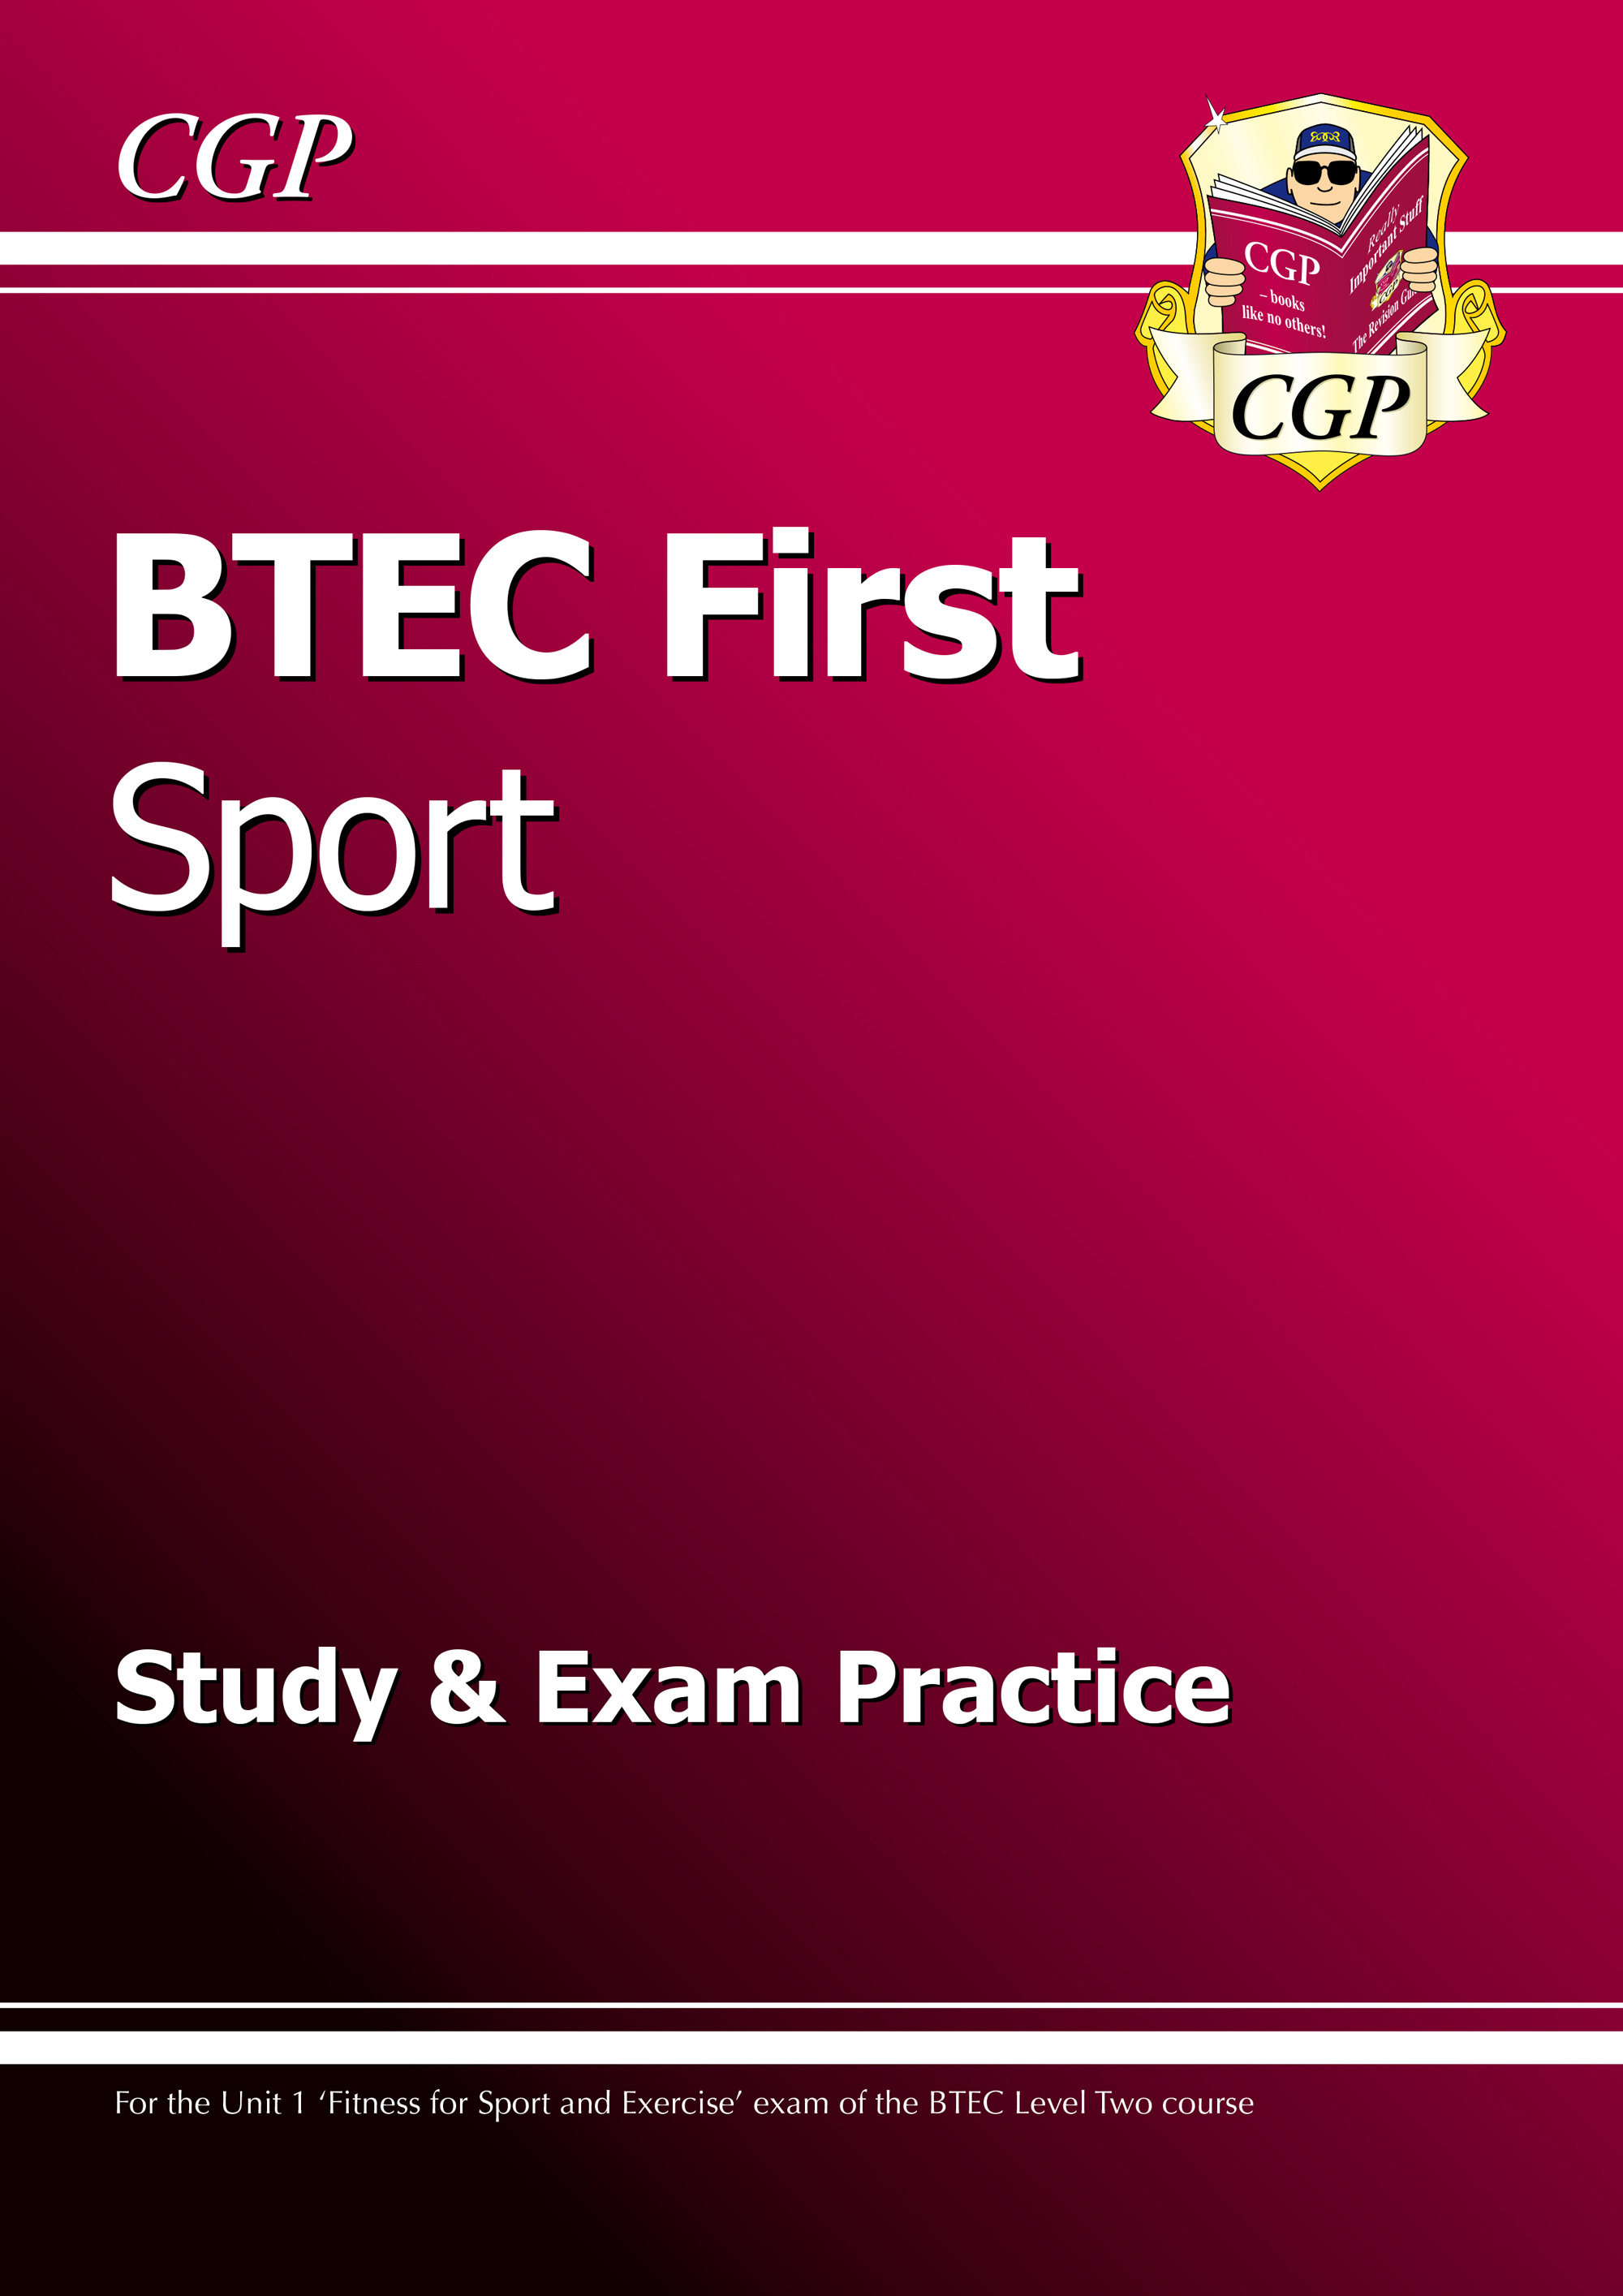 JERB1D - BTEC First in Sport - Study & Exam Practice (Digital Edition)